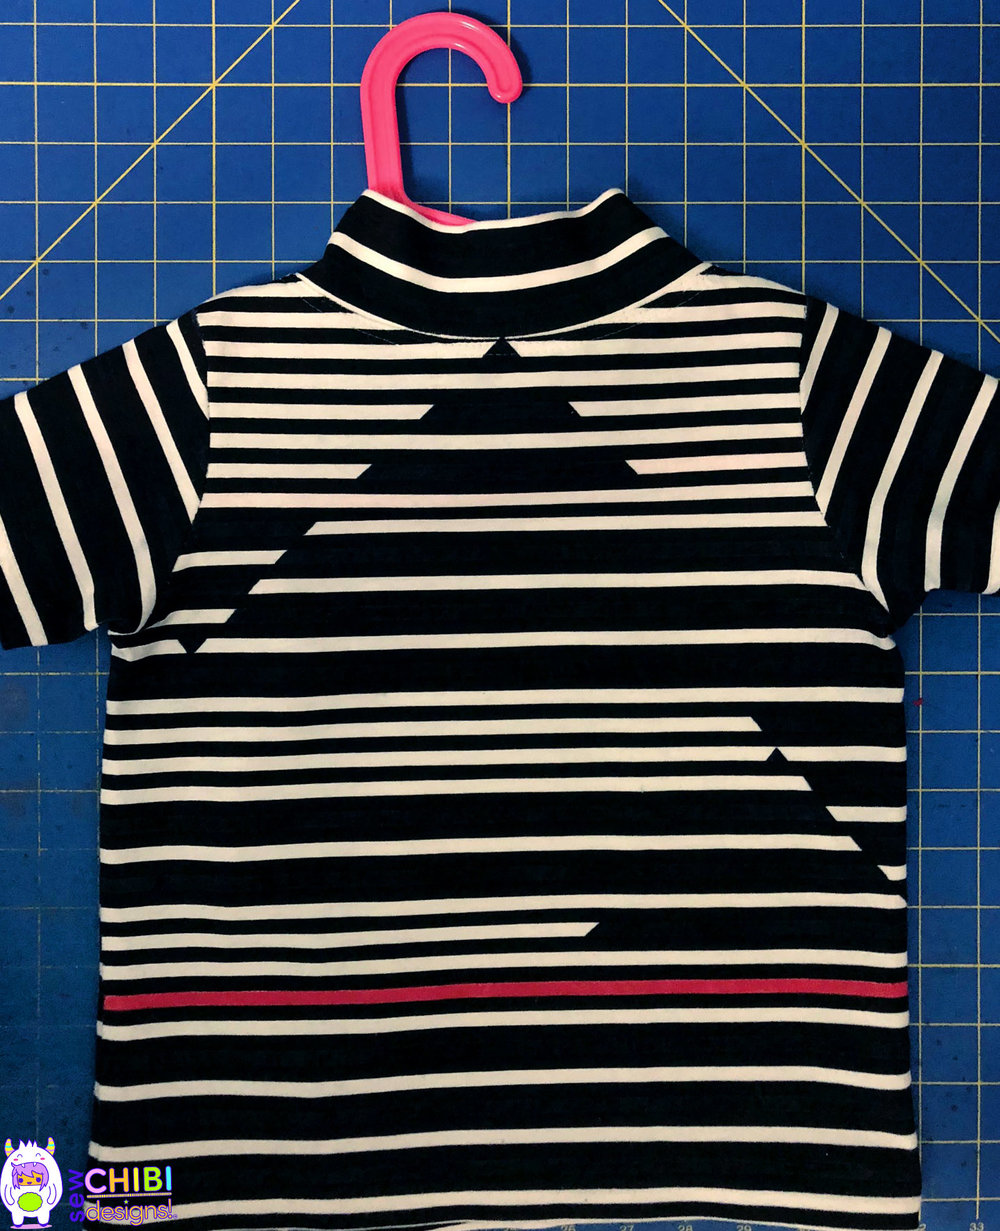 Sew Chibi Designs  STRIPES WEEK: Action, GO! for Project Run & Play. Handmade kids fashion 2018 inspired by Asian streetwear.